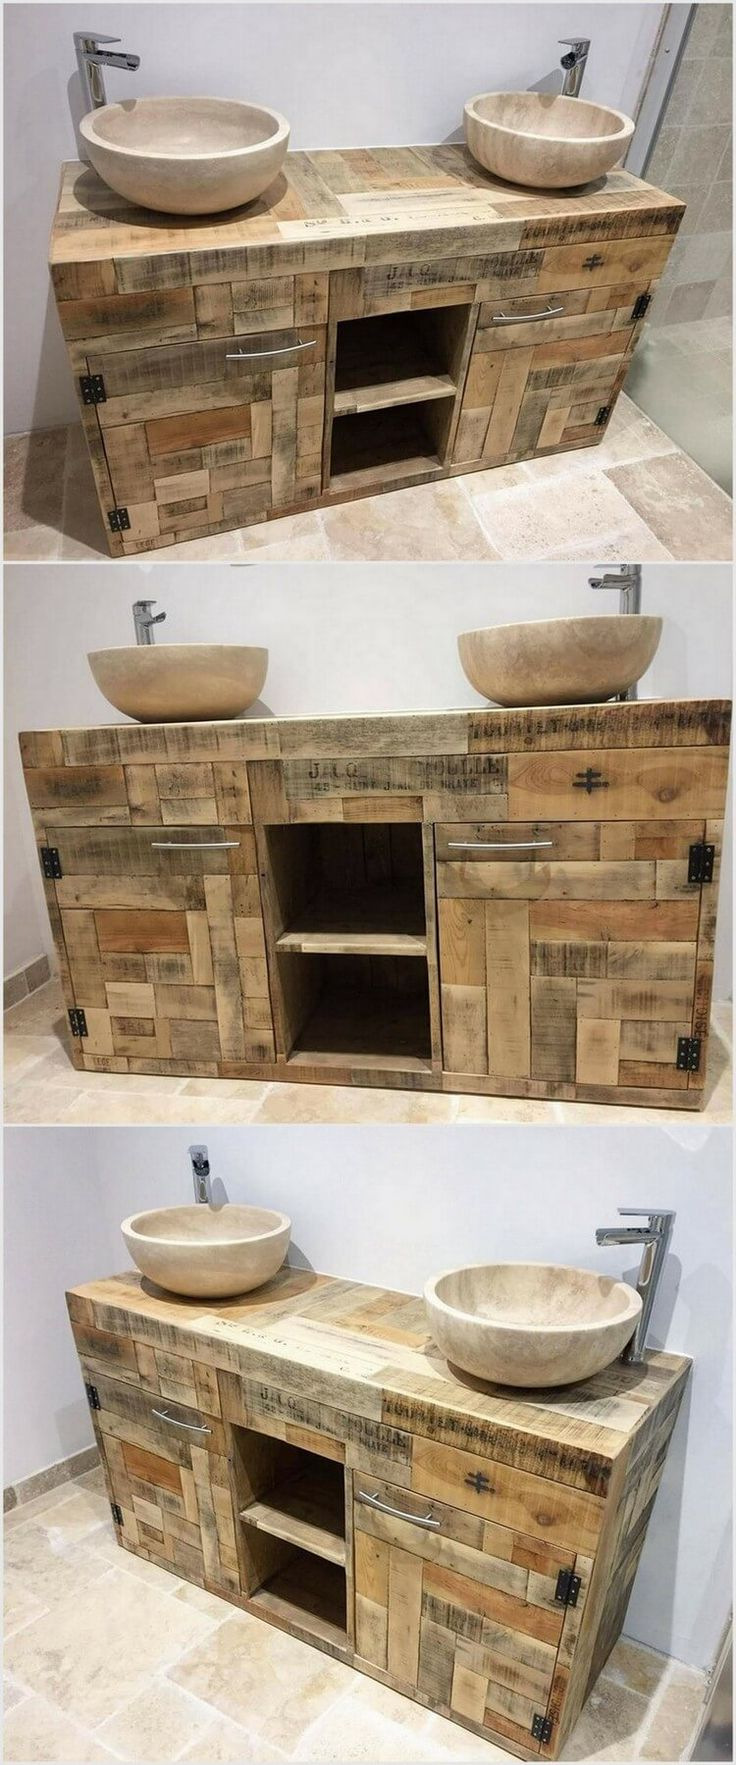 Best 25 pallet bathroom ideas on pinterest rustic for Bathroom ideas made from pallets